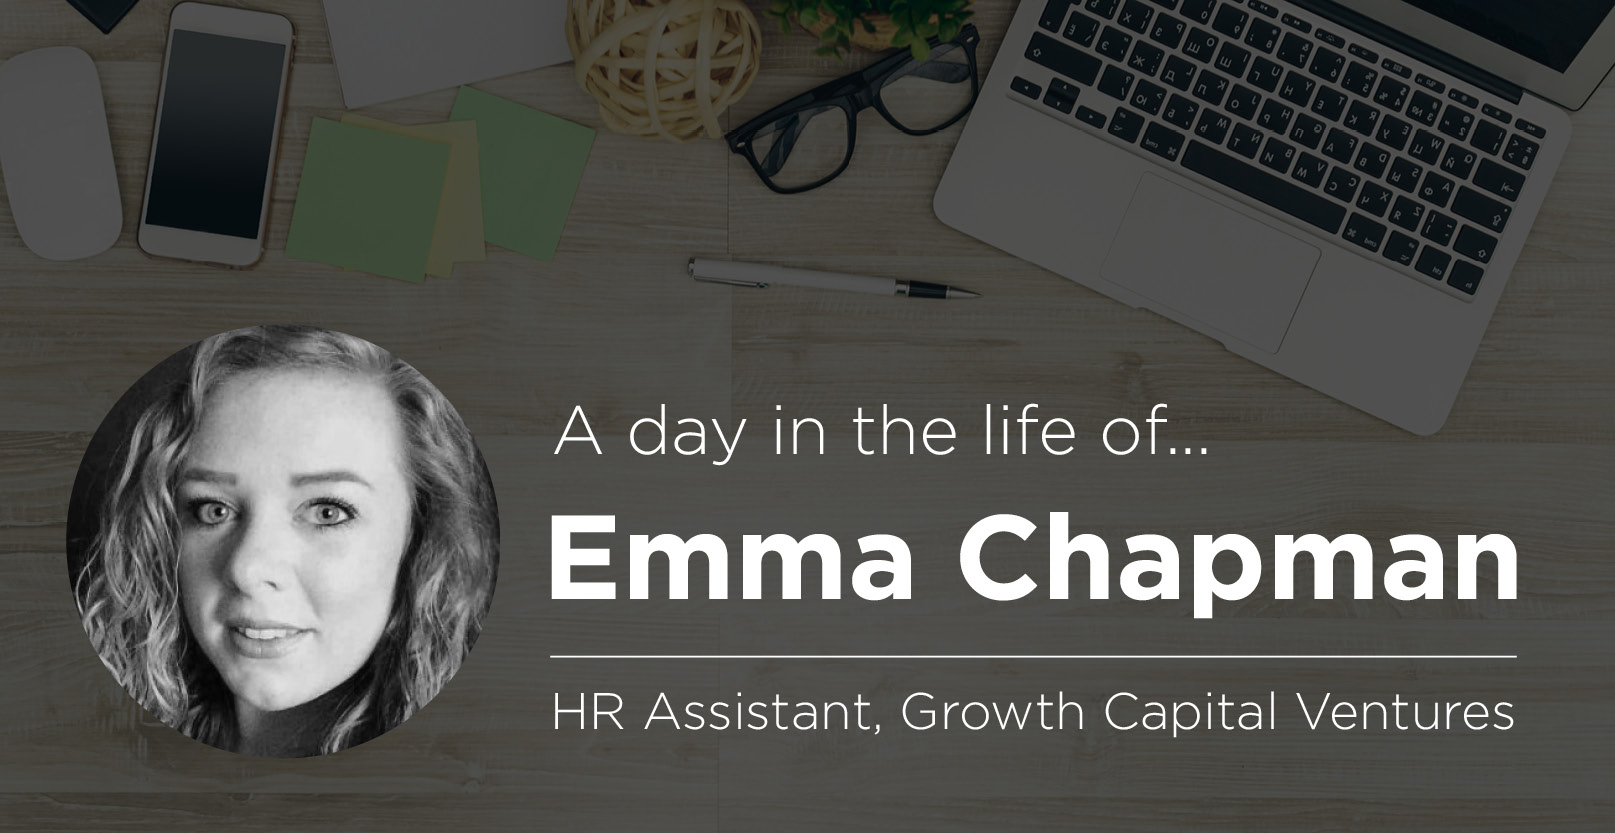 Emma-Chapman-Day-In-The-Life-LinkedIn.jpg